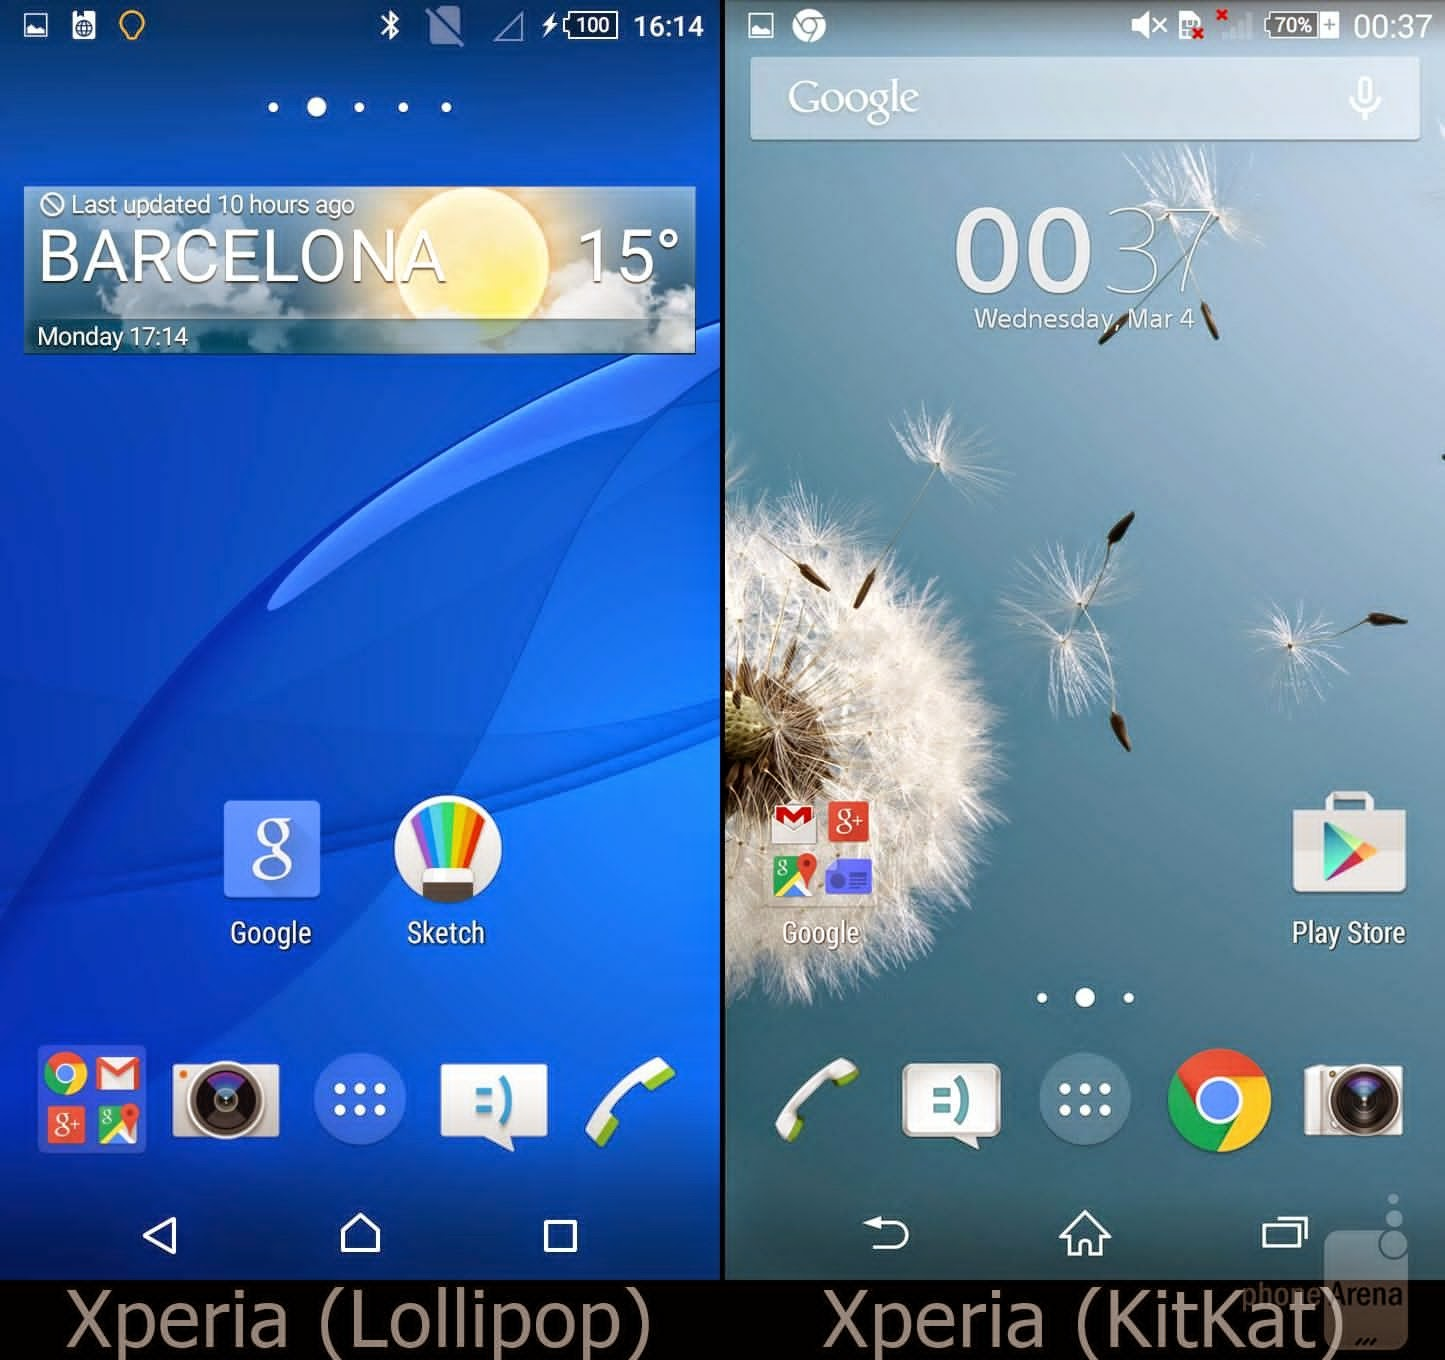 Sony Xperia Lollipop vs Kitkat